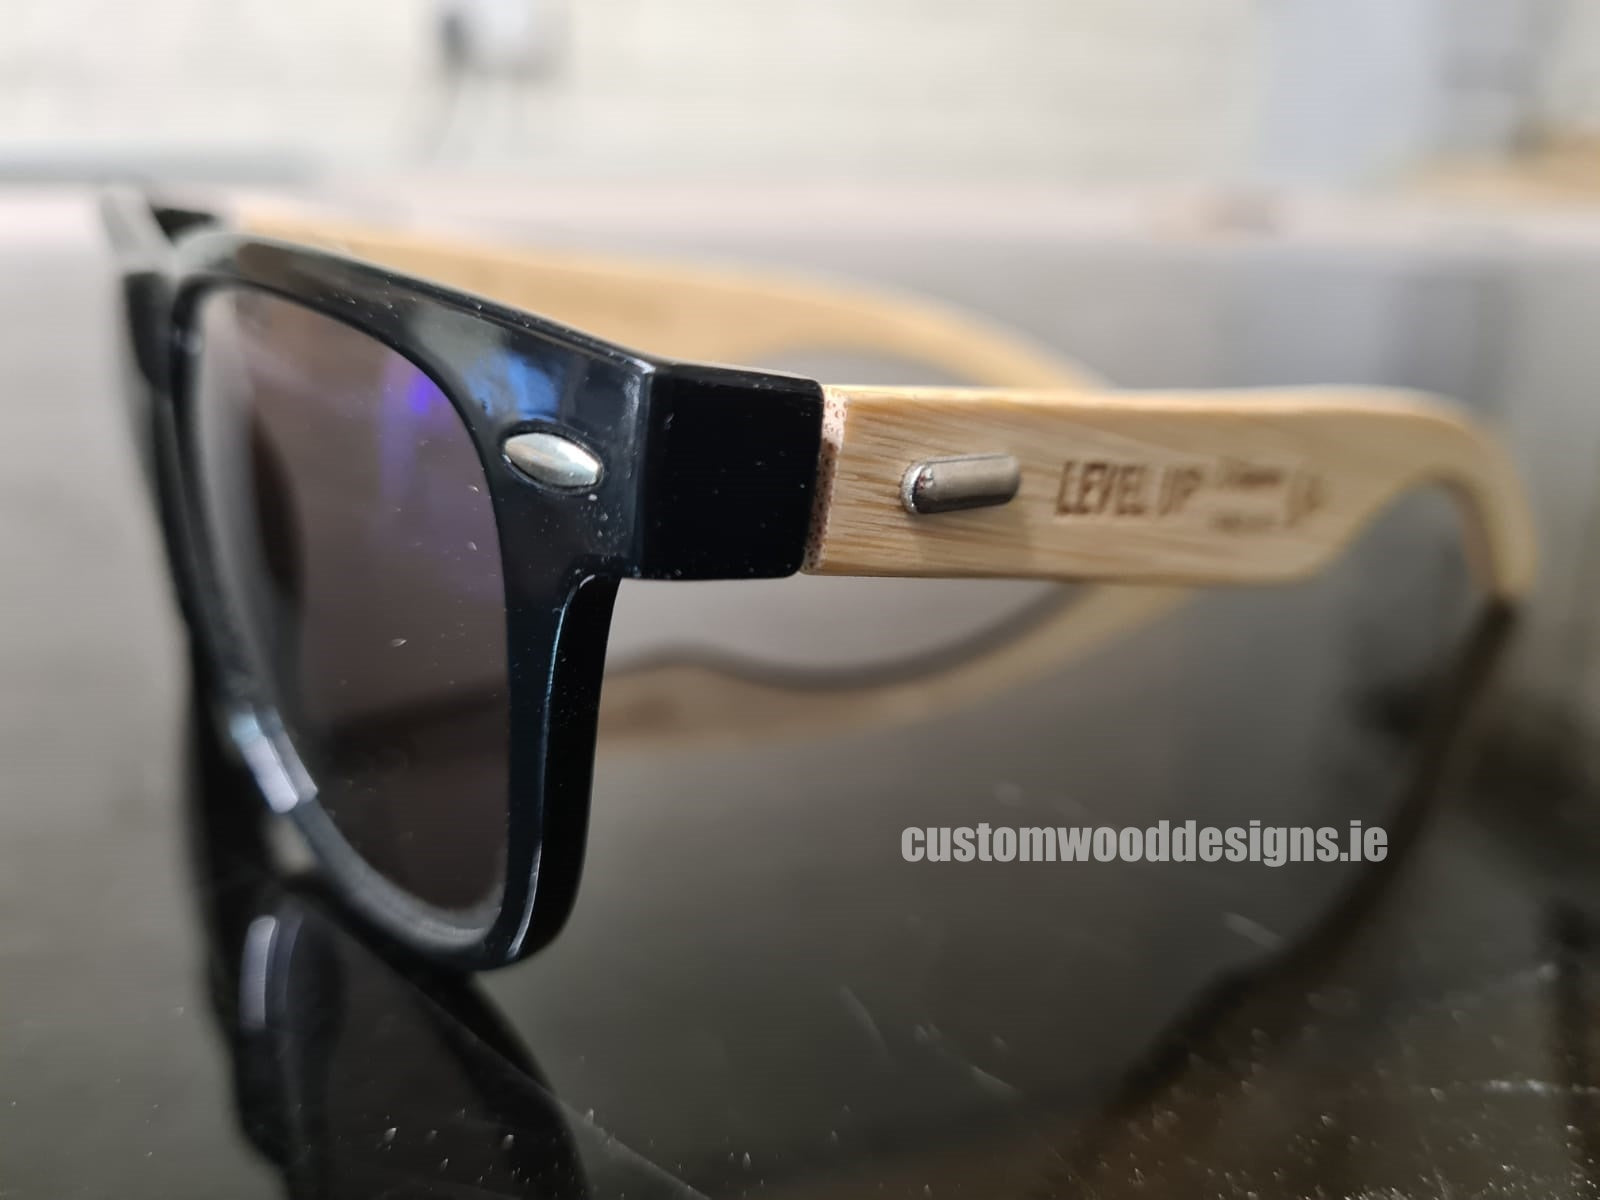 SWAG gifting ideas Corporate gifting ireland sustainable corporate gifts custom wood designs StrideXM wooden sunglasses